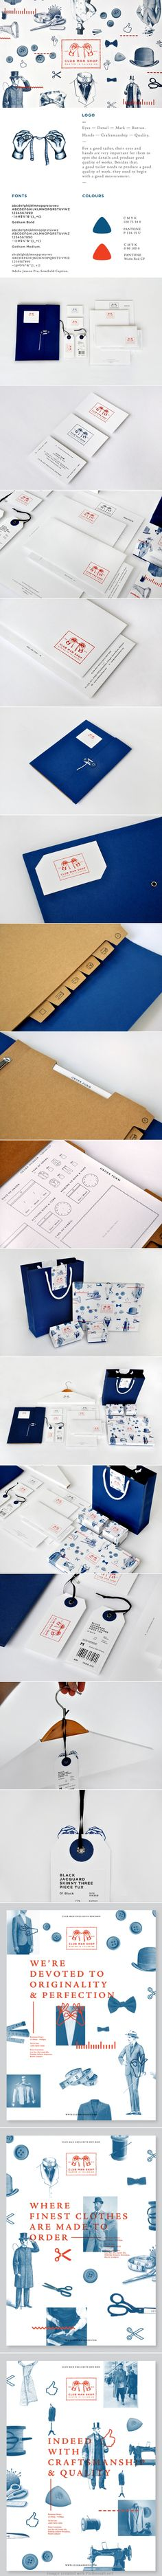 Club Man Shop on Behance. Red, white and blue #identity #packaging #branding PD